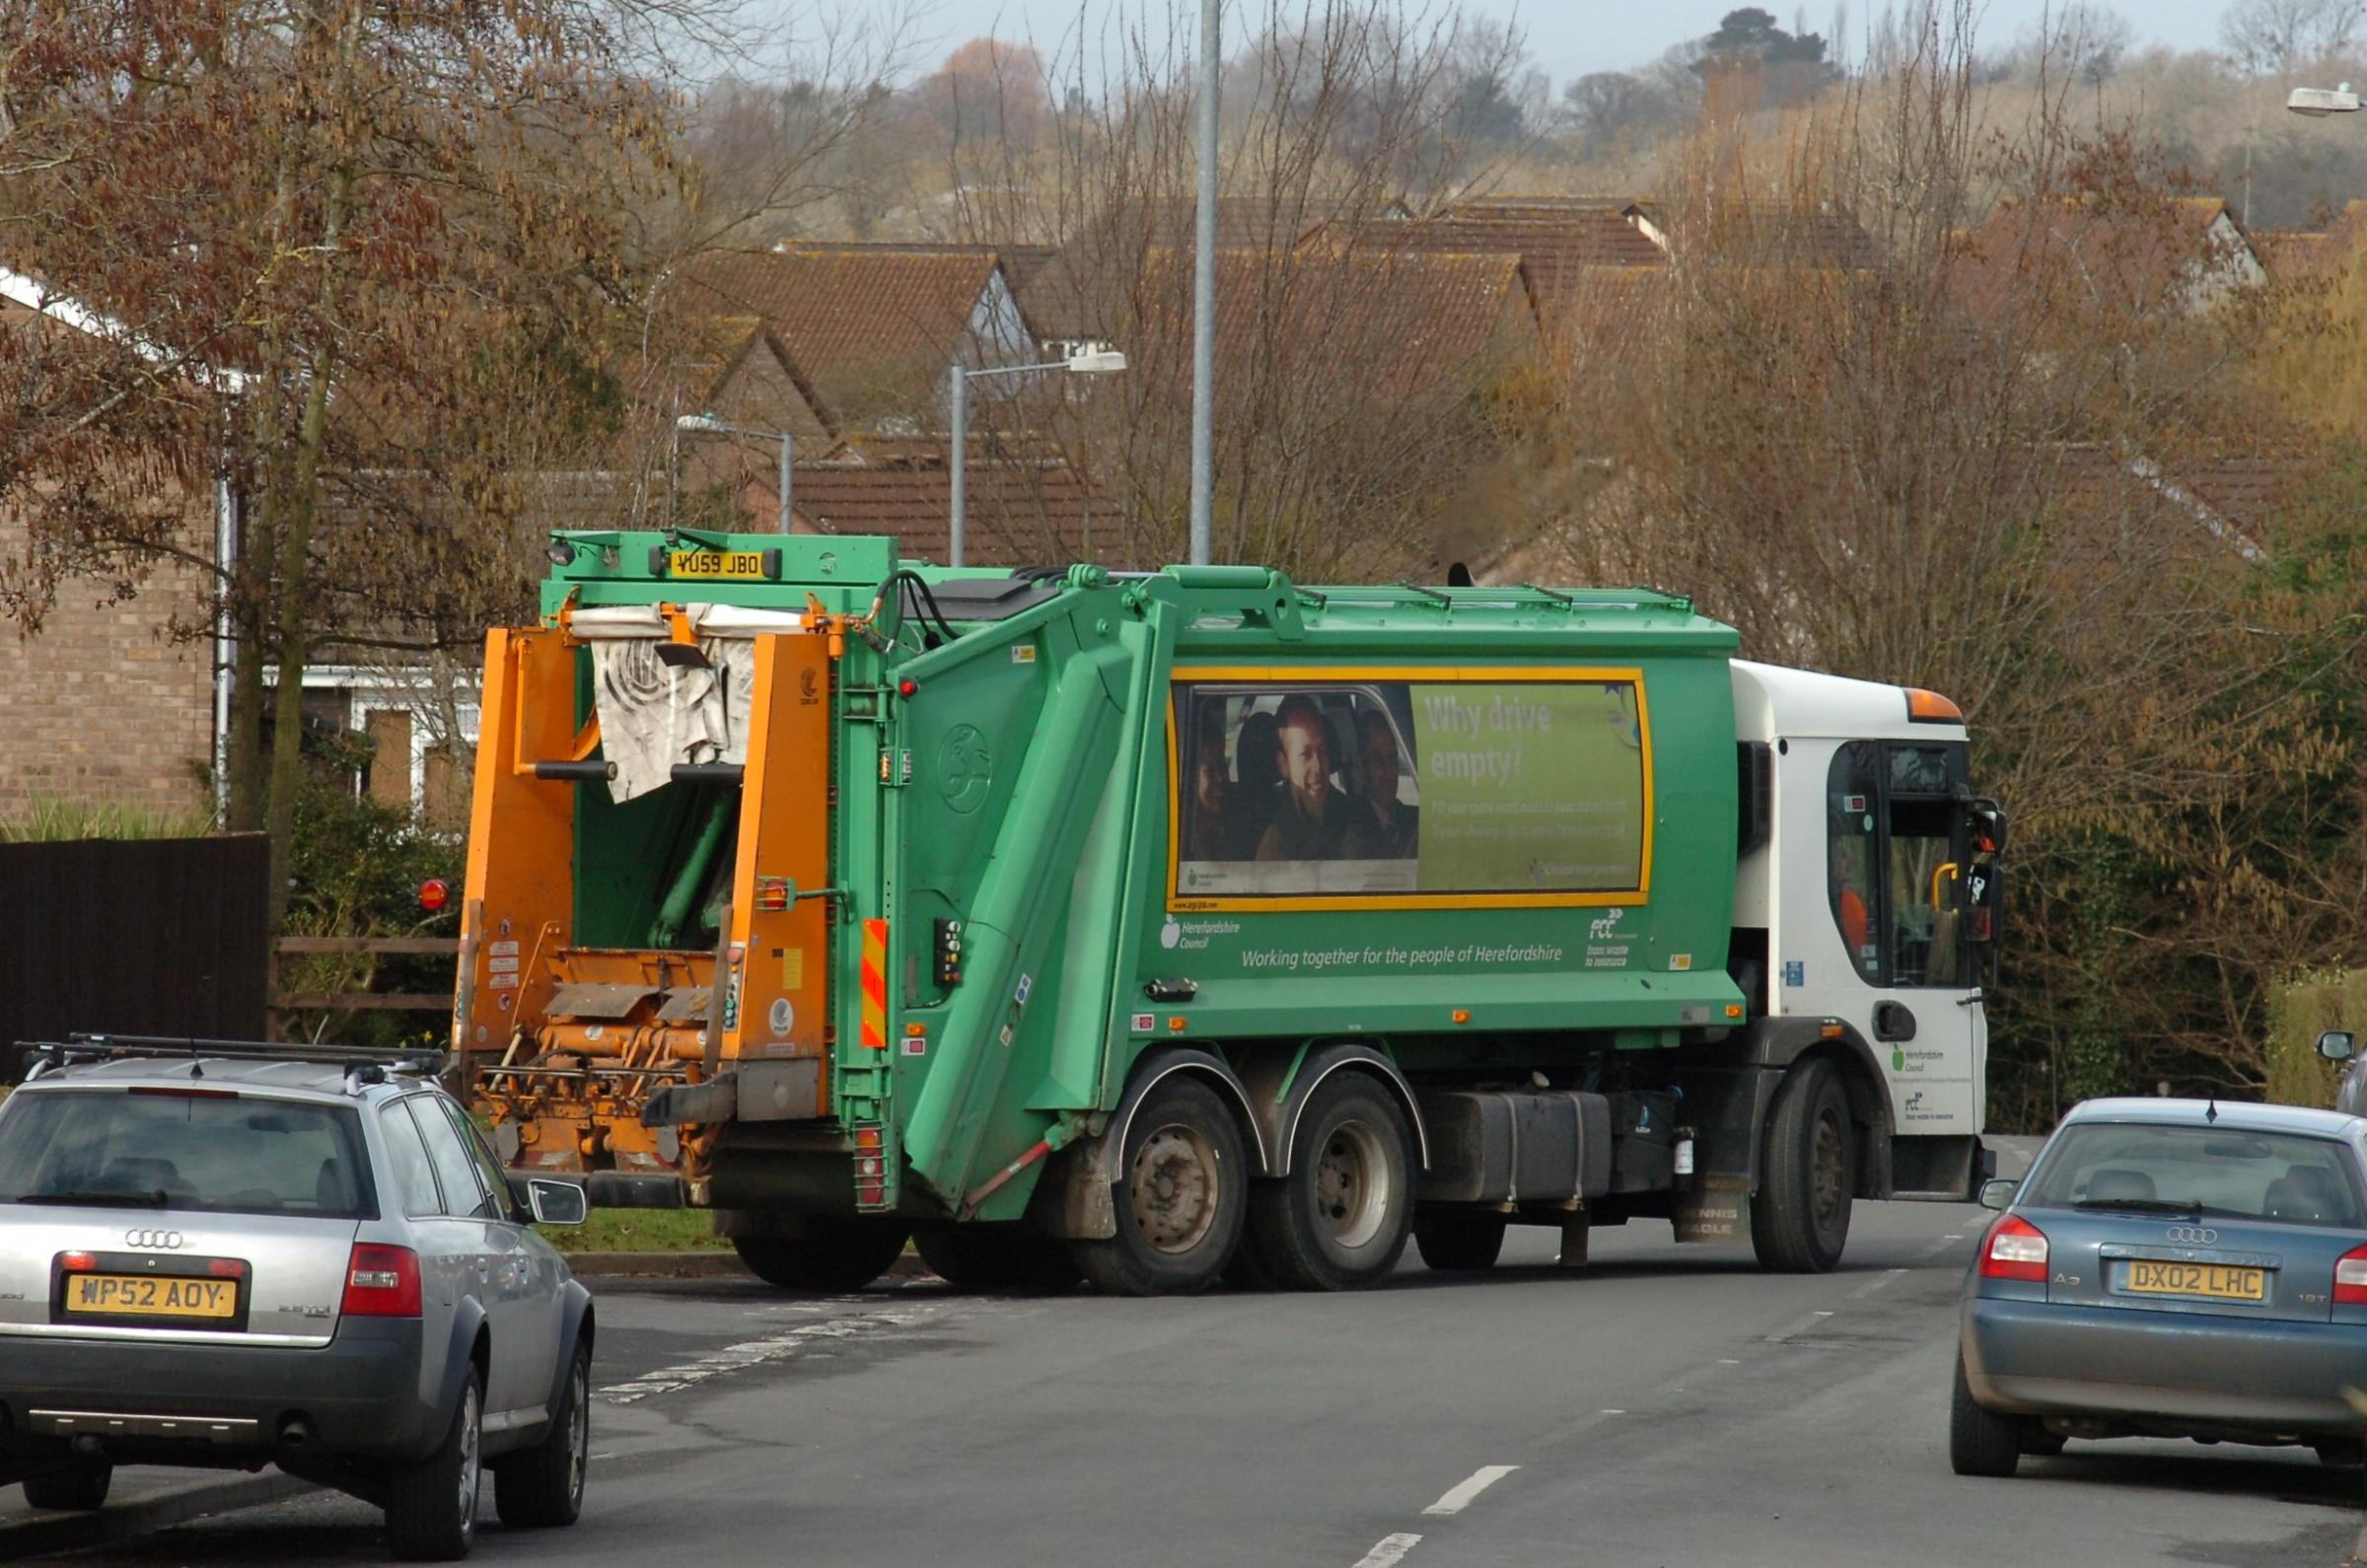 Bexley Council announce bank holiday changes to waste collection